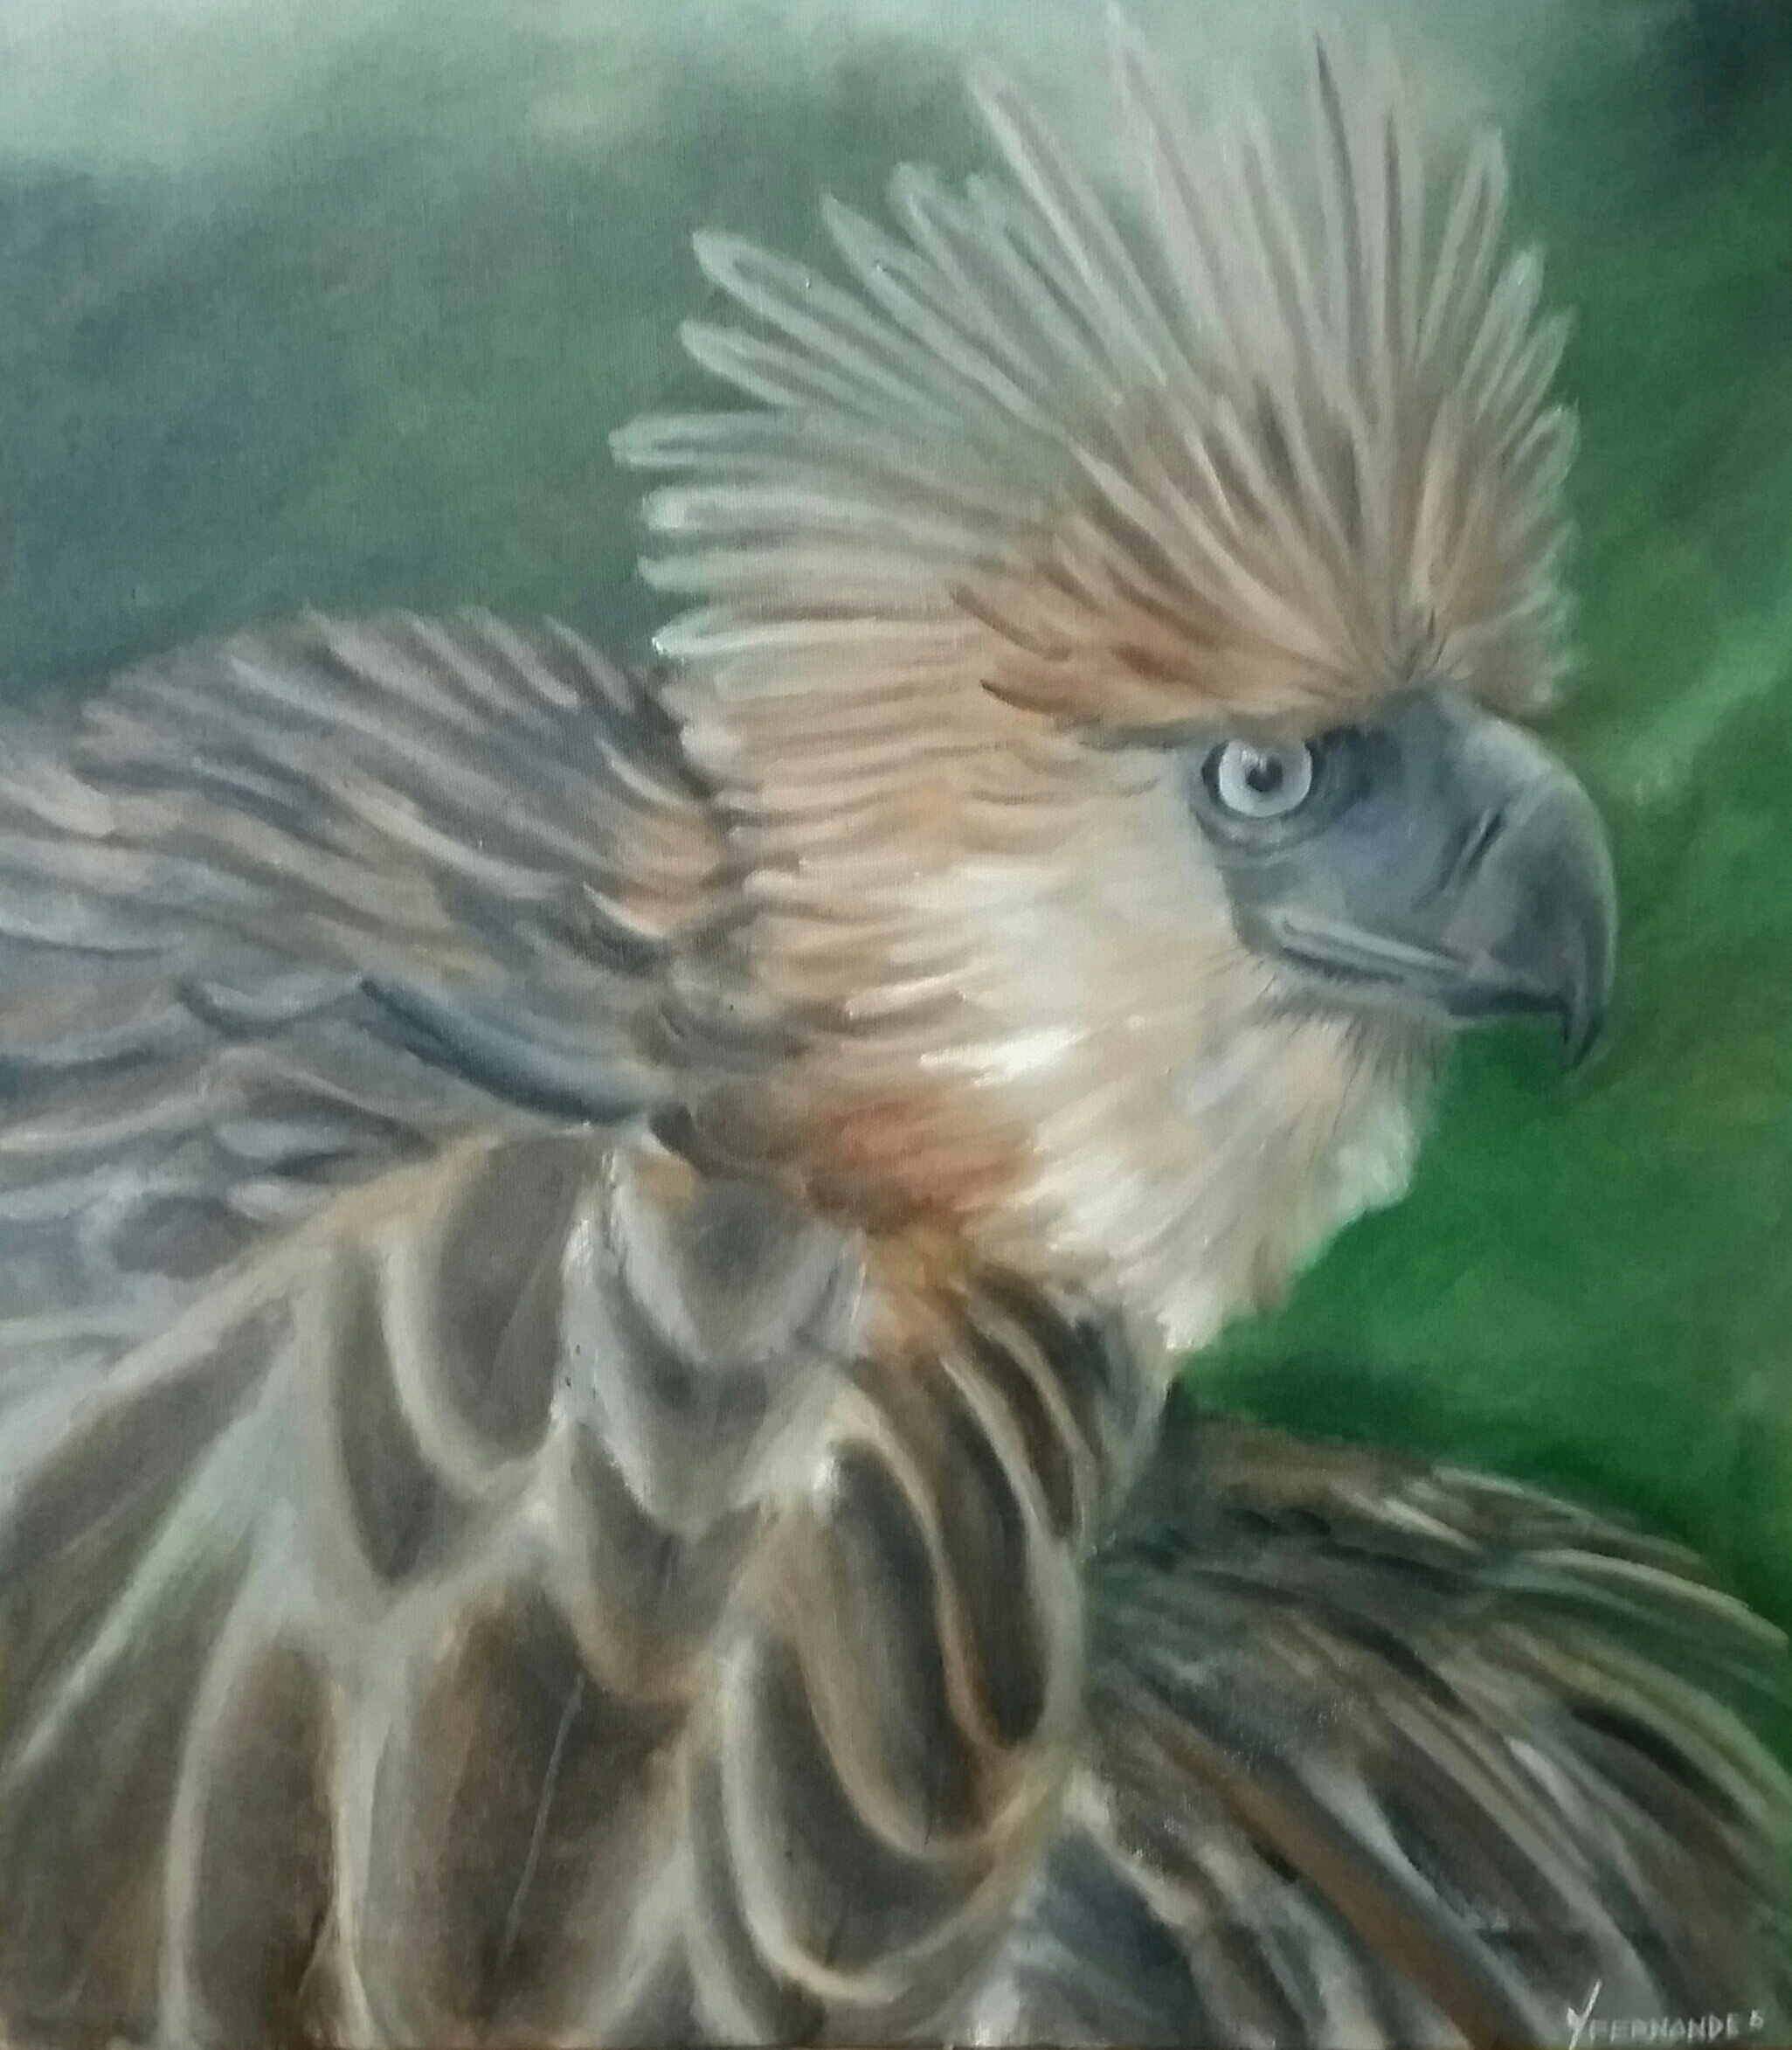 The Endangered Philippine Eagle 12086